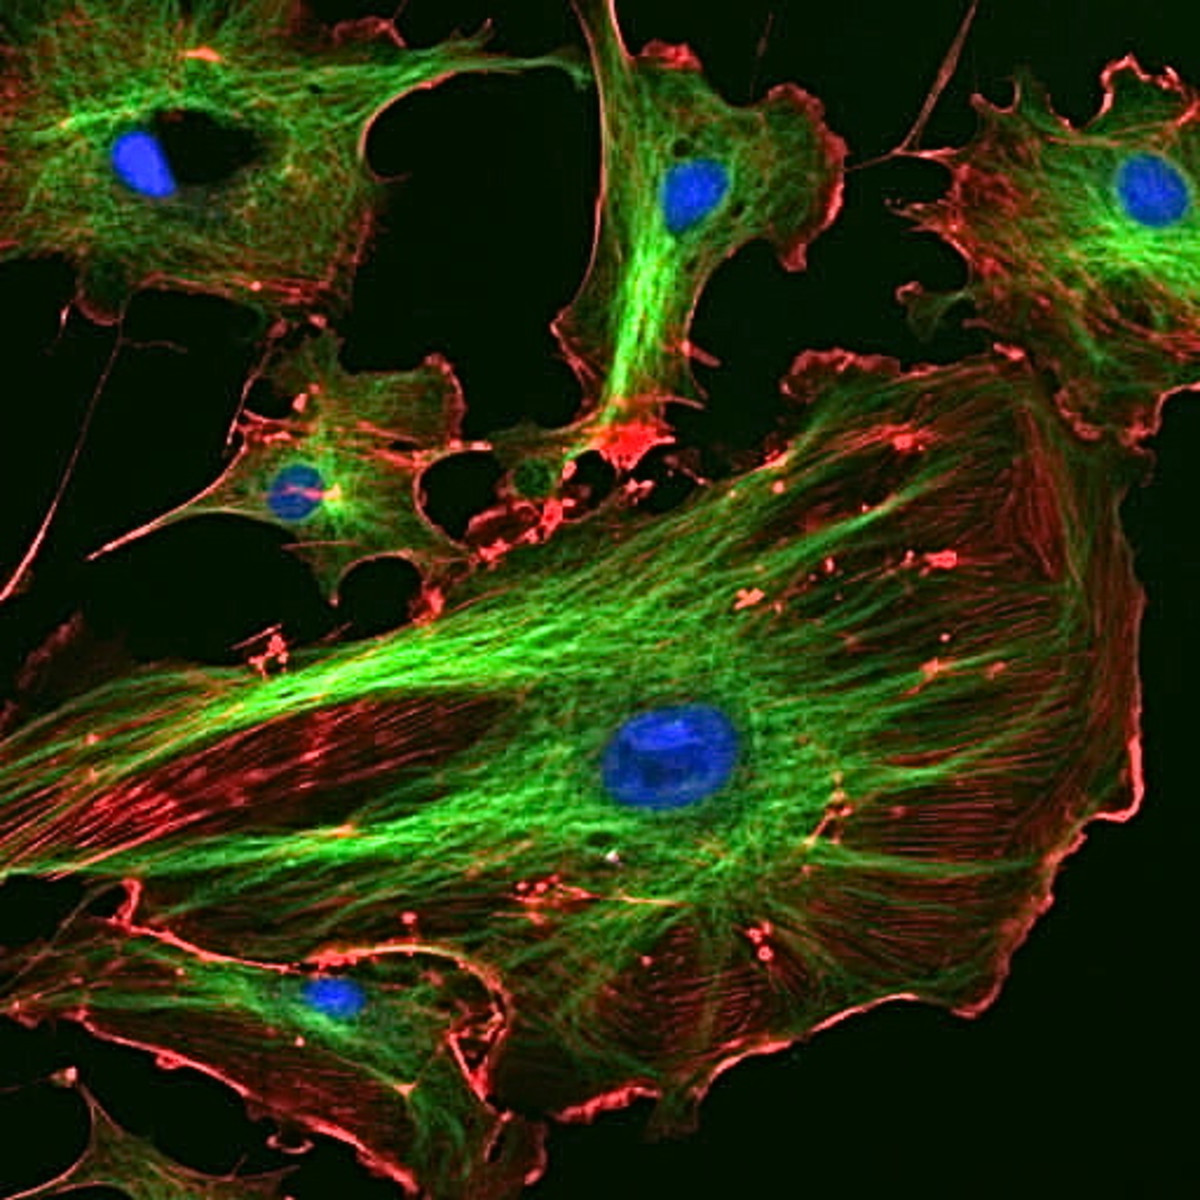 These are cells from a cow that have been stained to show the cytoskeleton. Blue = nucleus, green = microtubules, red = actin filaments